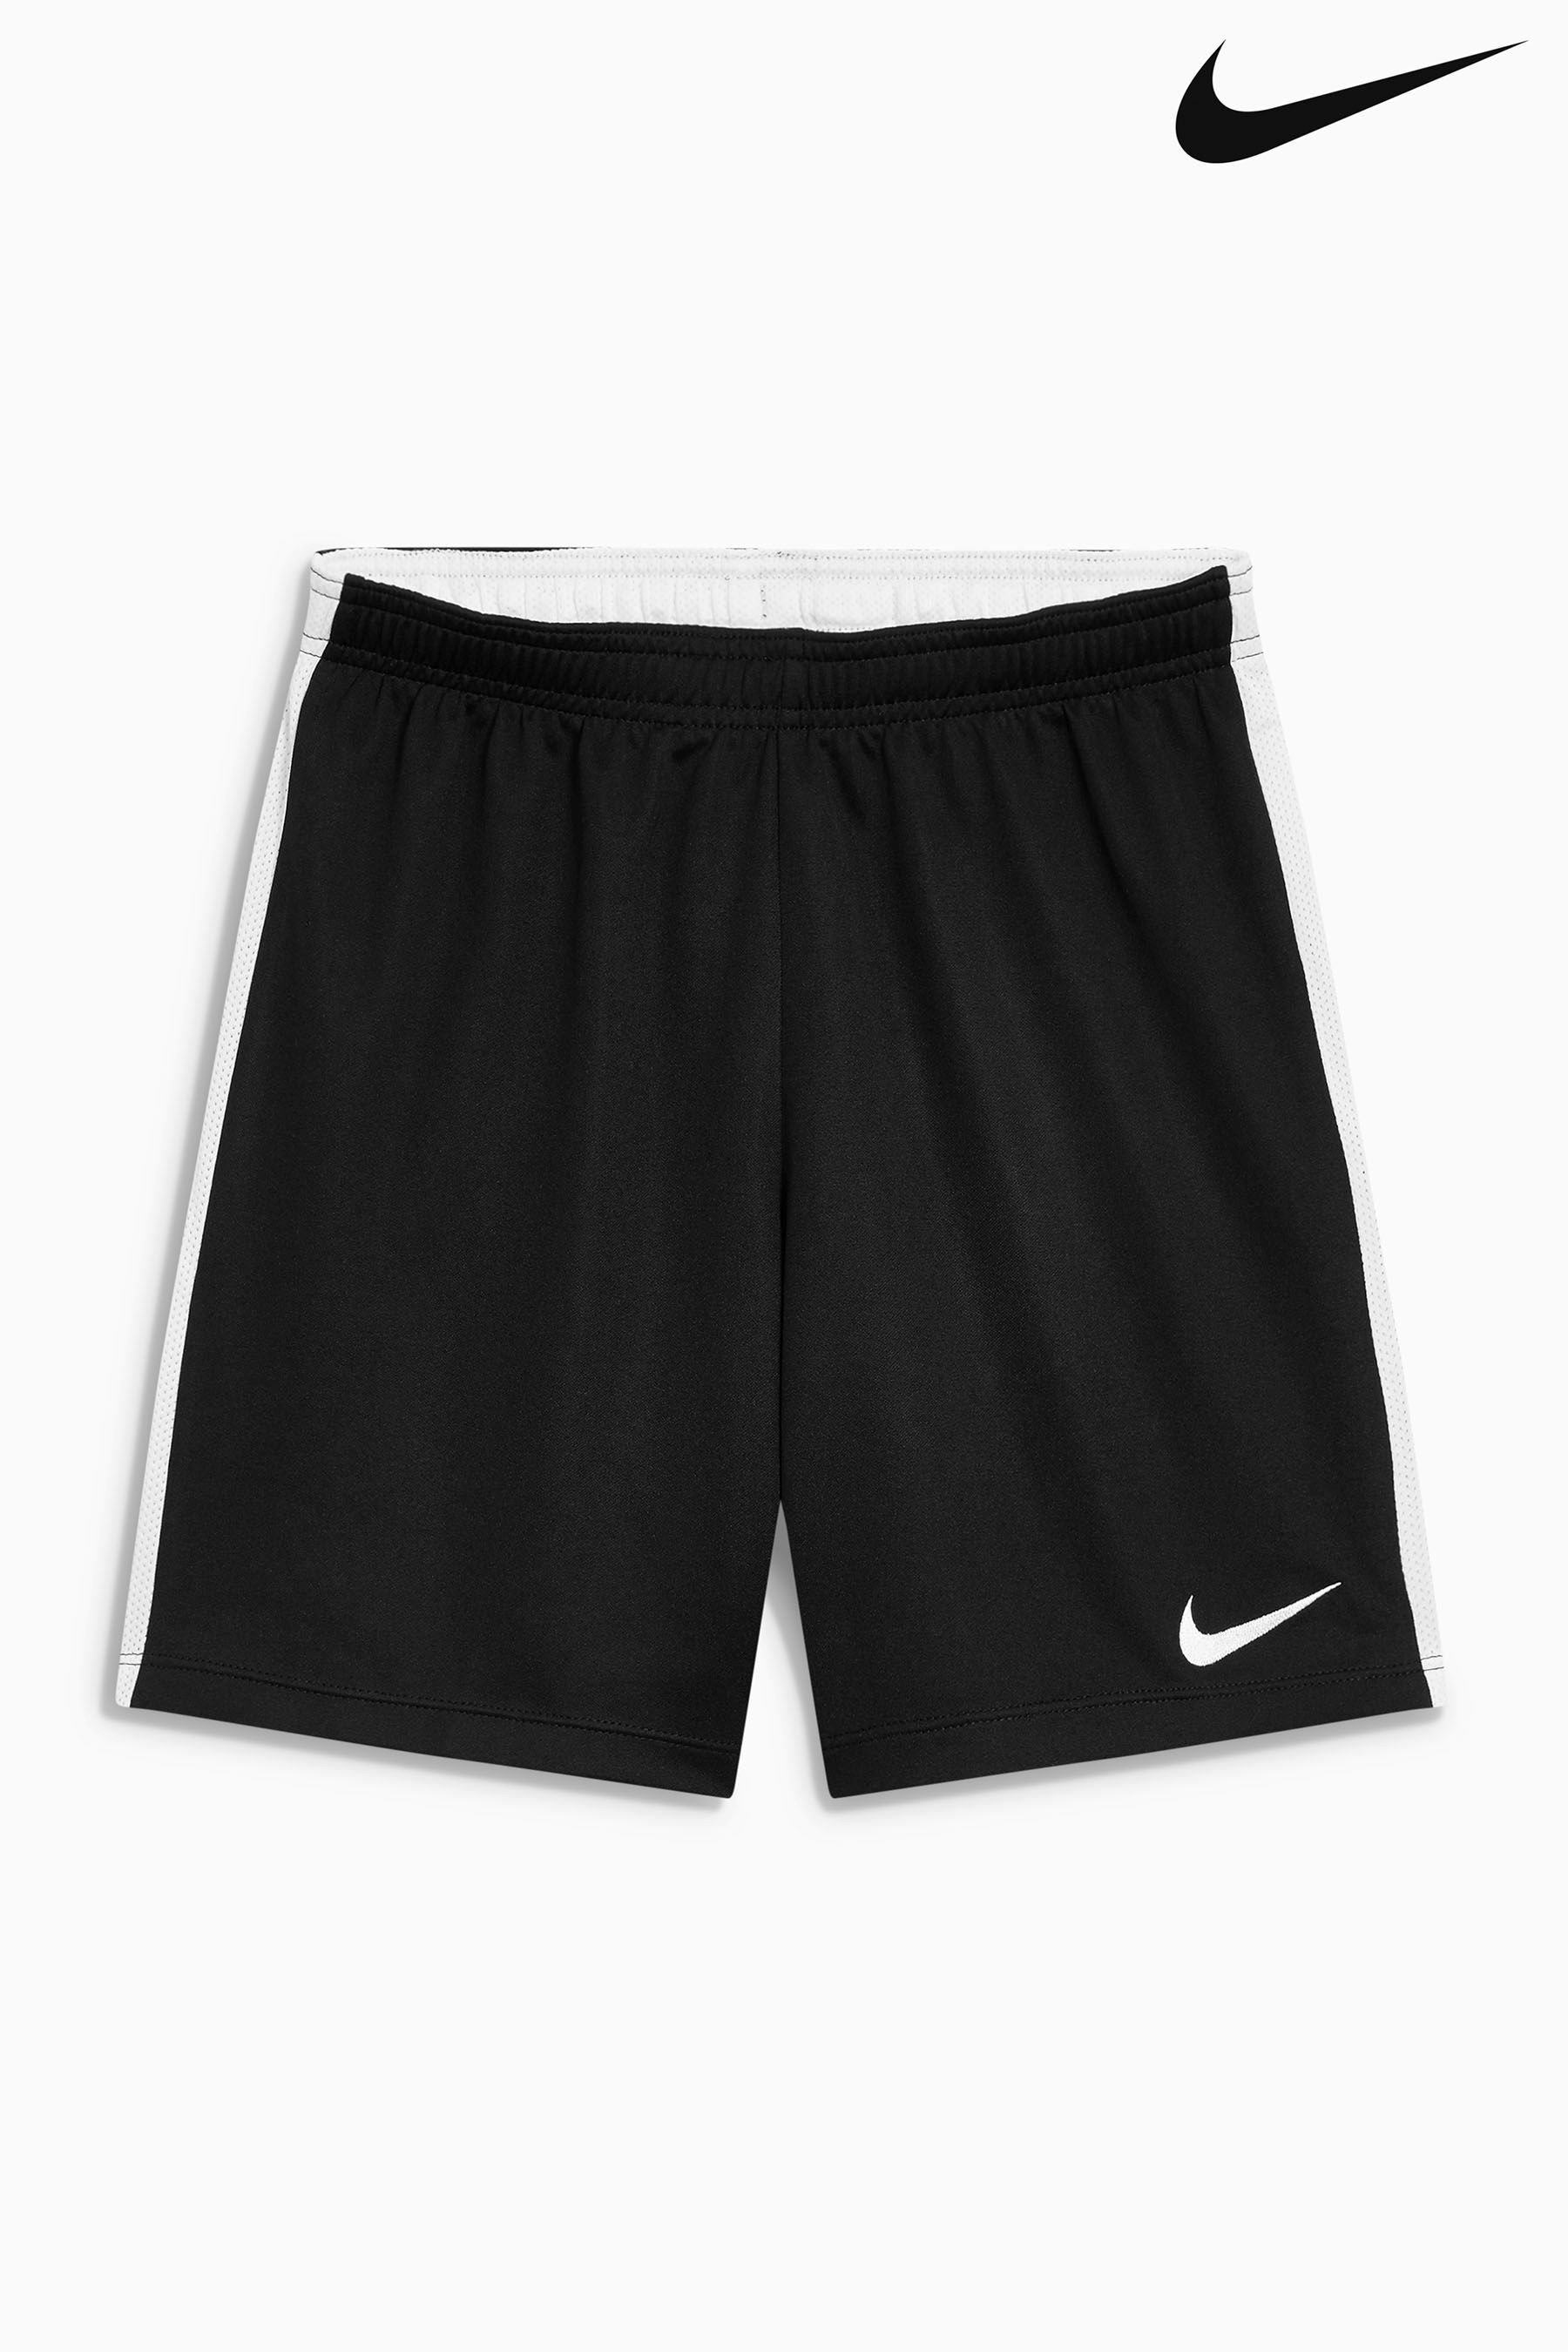 big discount casual shoes later Boys Nike Academy Football Short - Black | petit en 2019